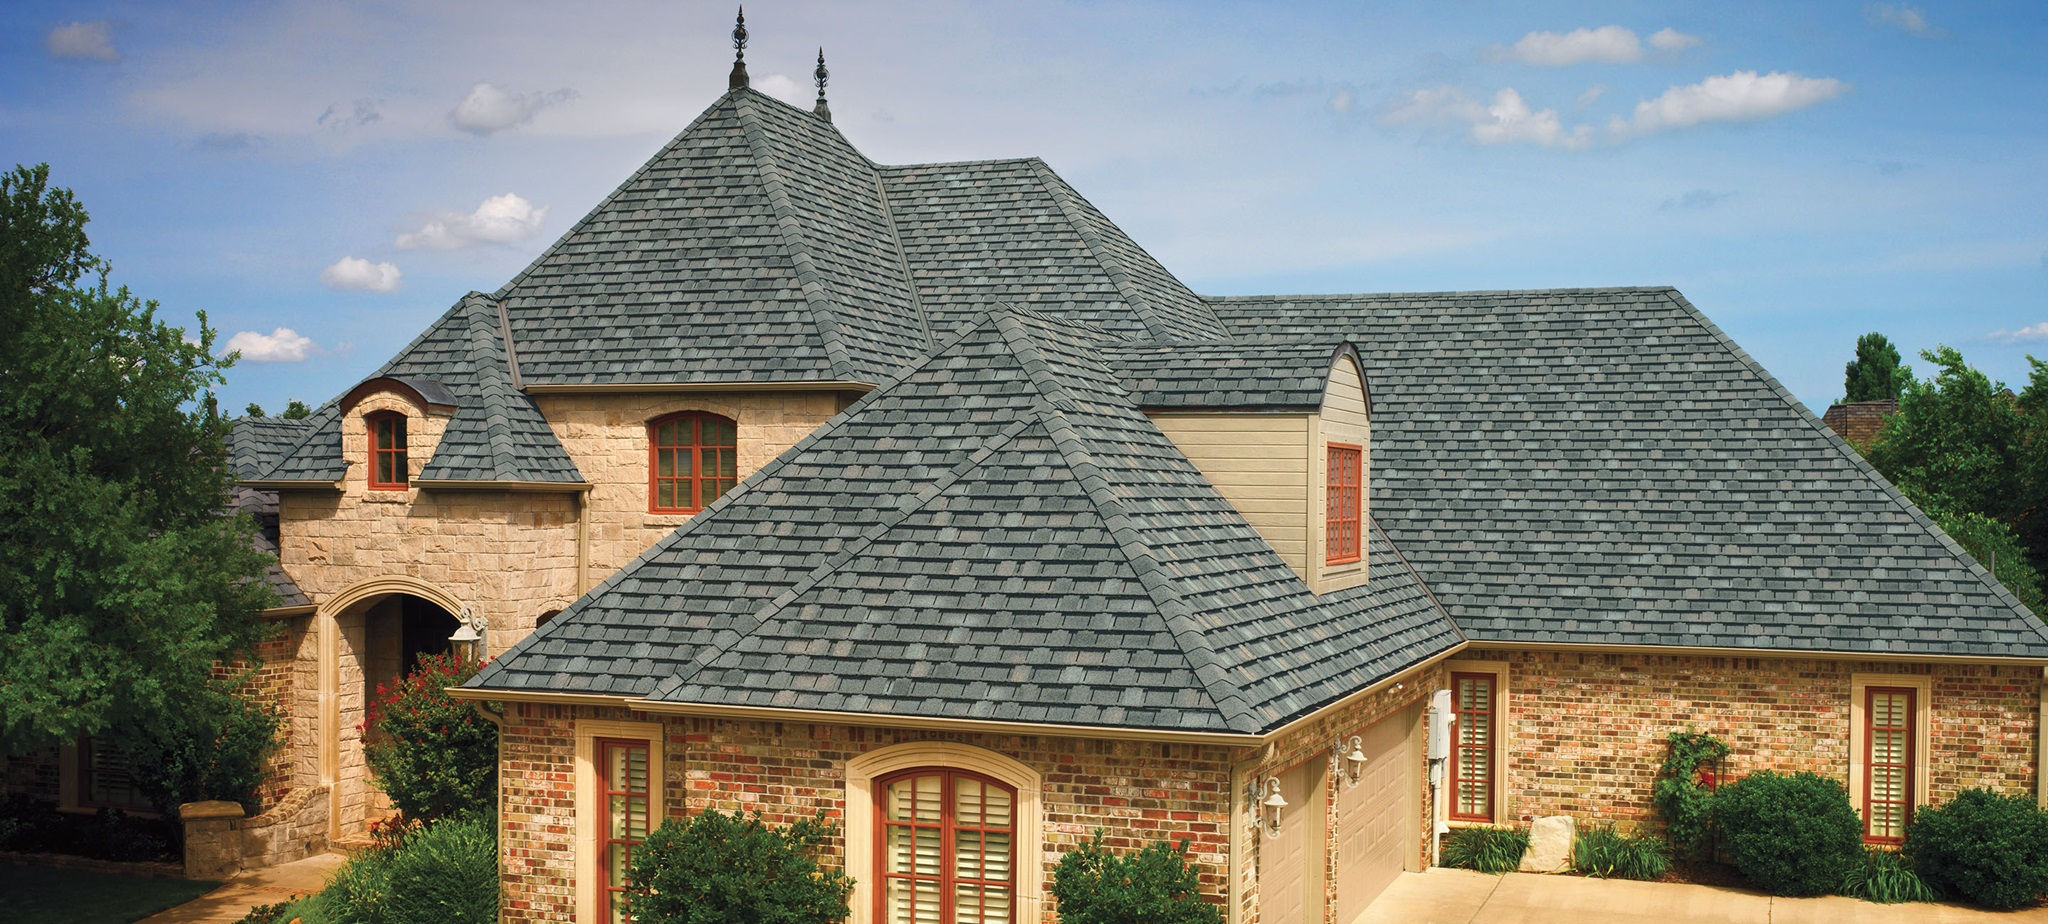 GAF Roofing Camelot Shingle From Century Building Materials